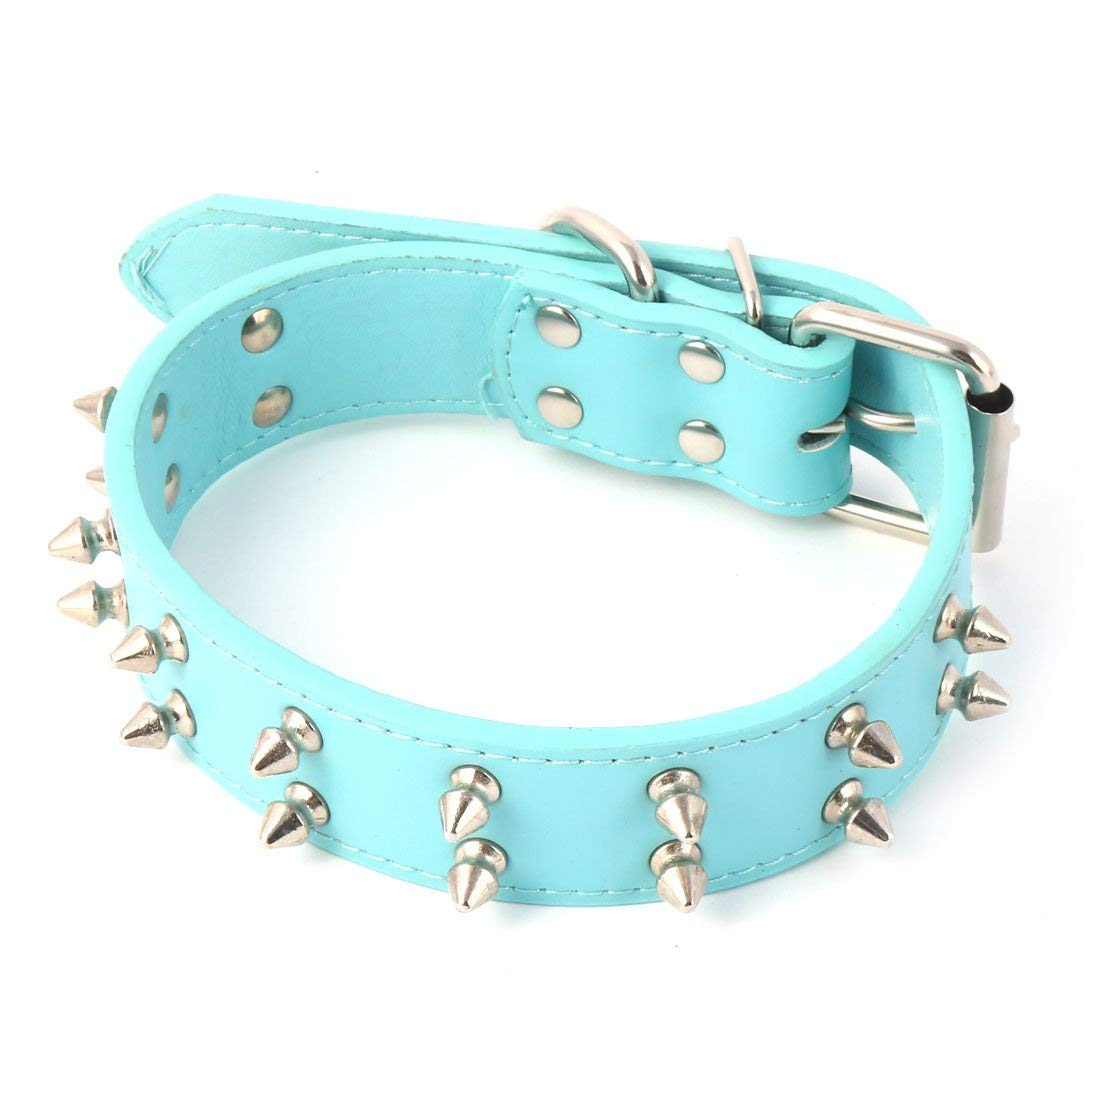 Faux Leather Pet Dog Puppy Two Rows Rivets Studded Metal Buckle Collar Neck Strap